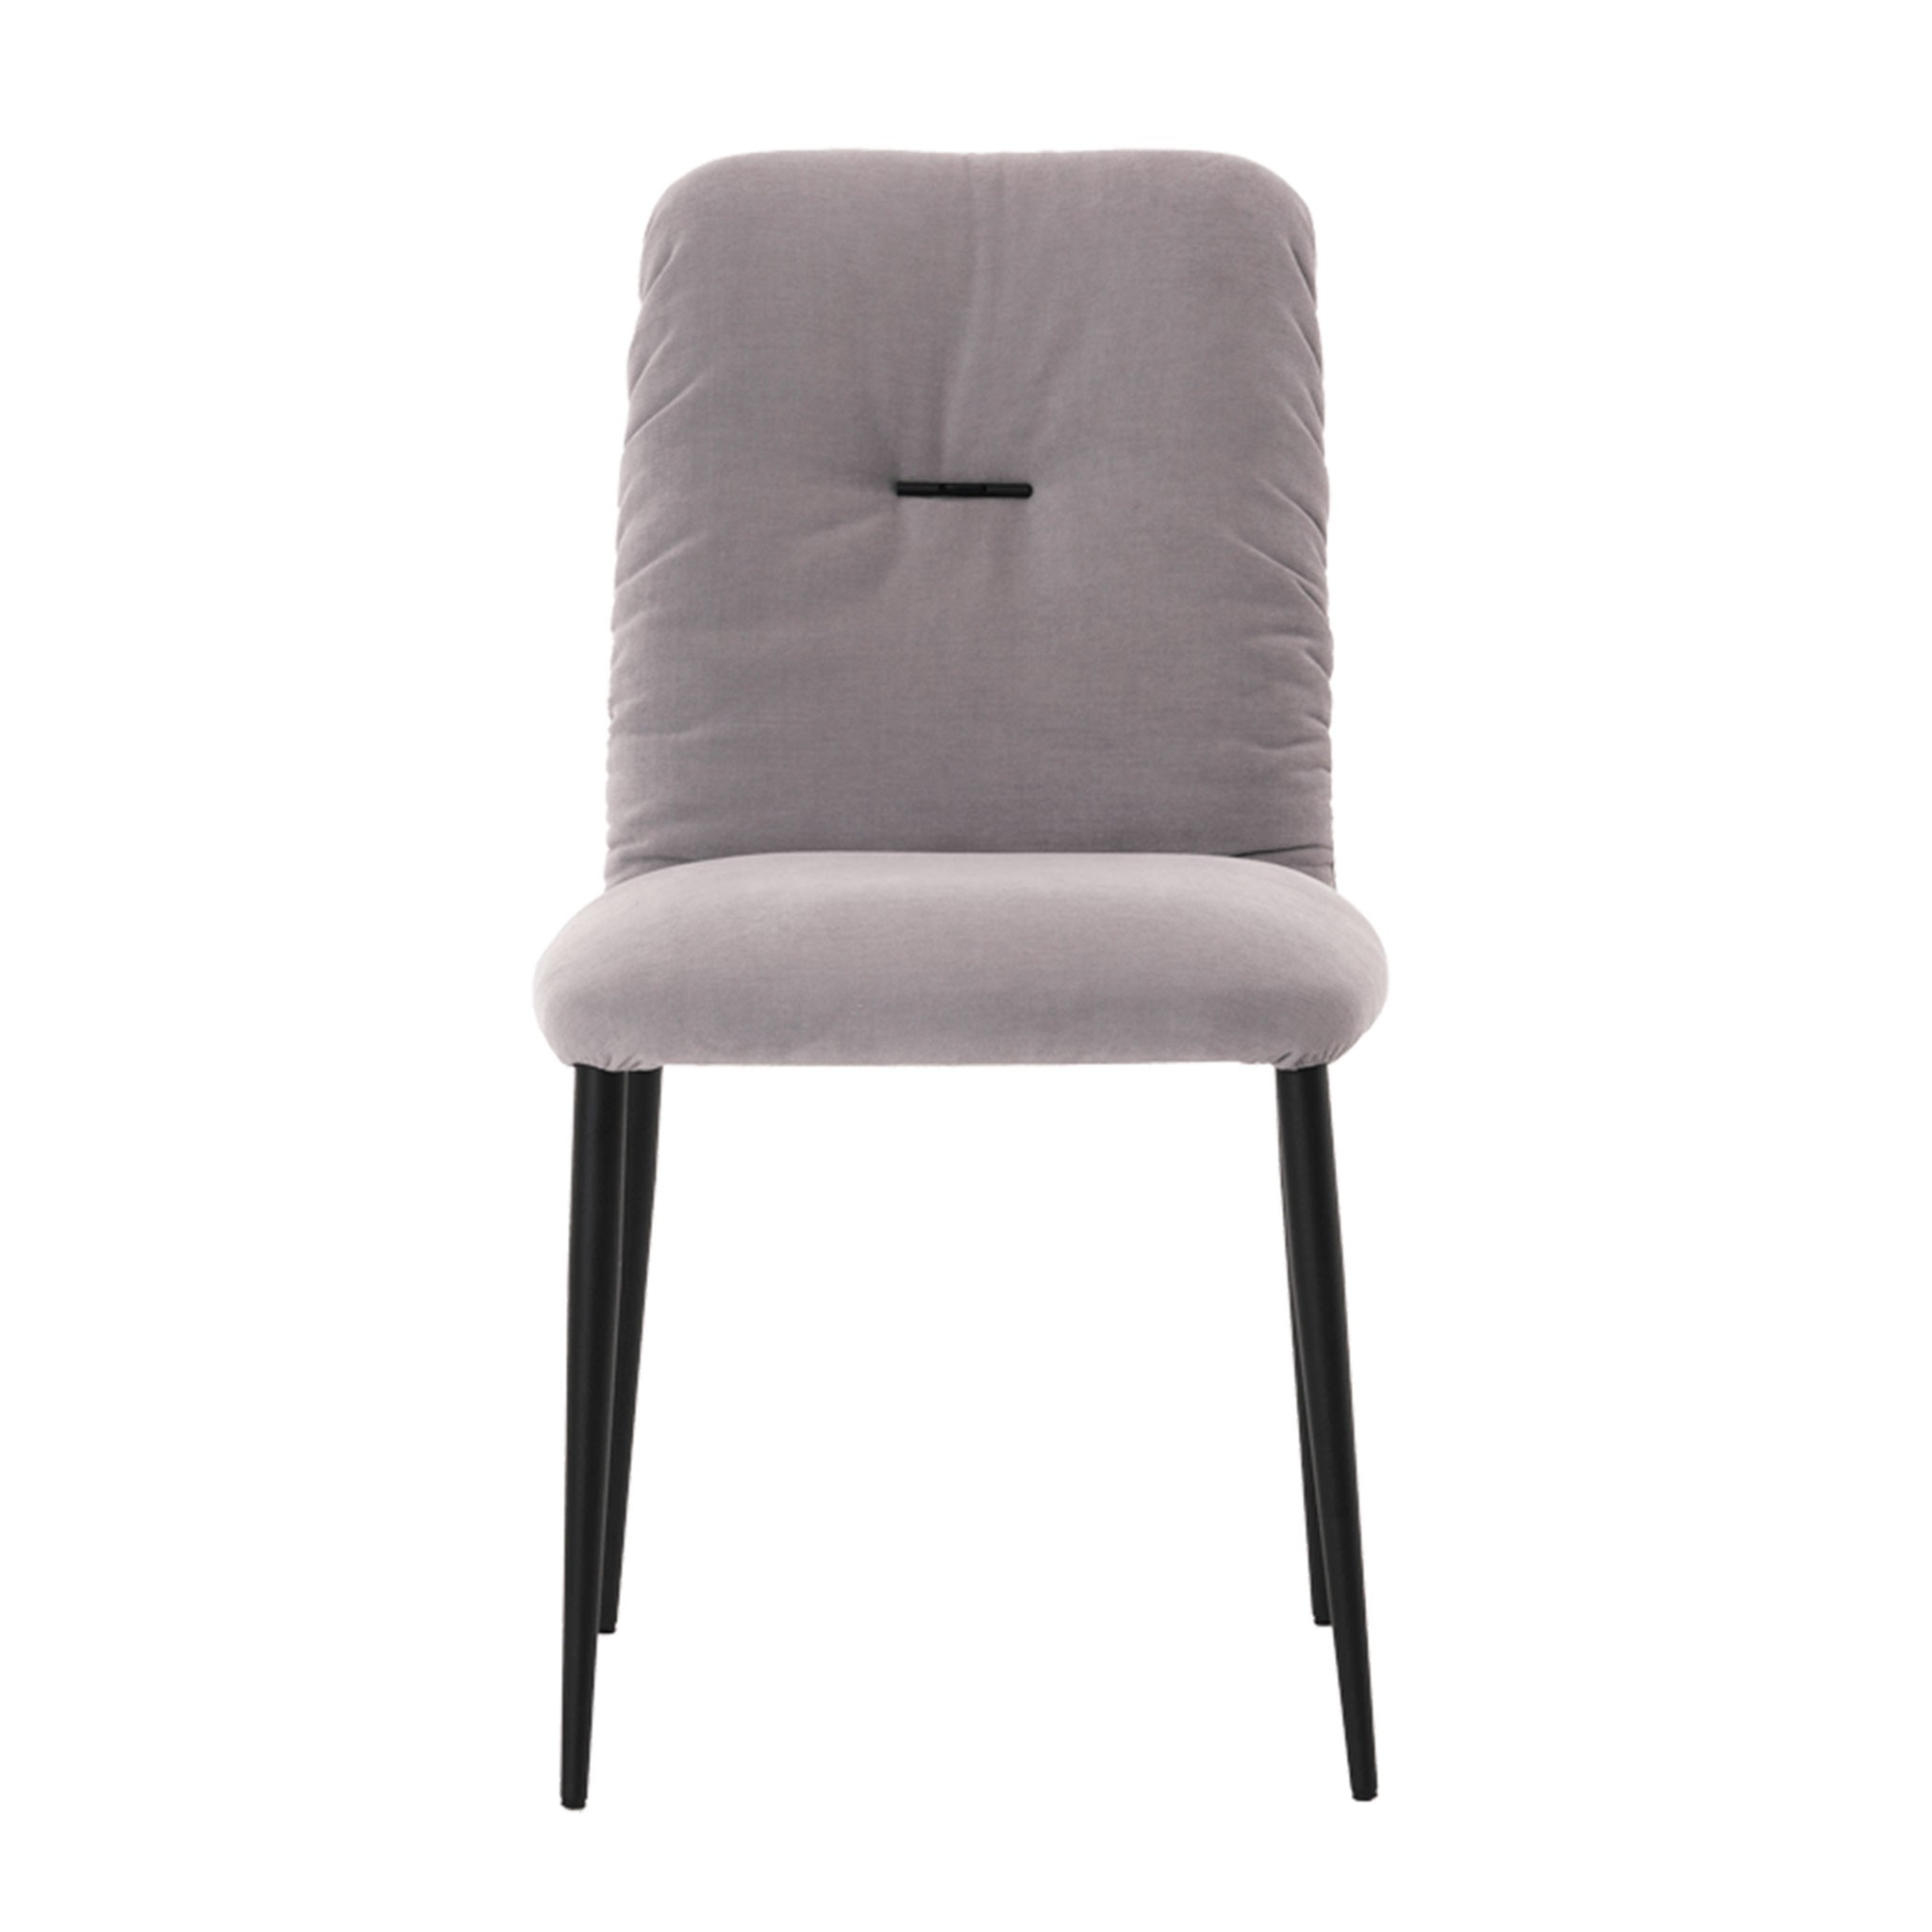 Ora chair - metal legs